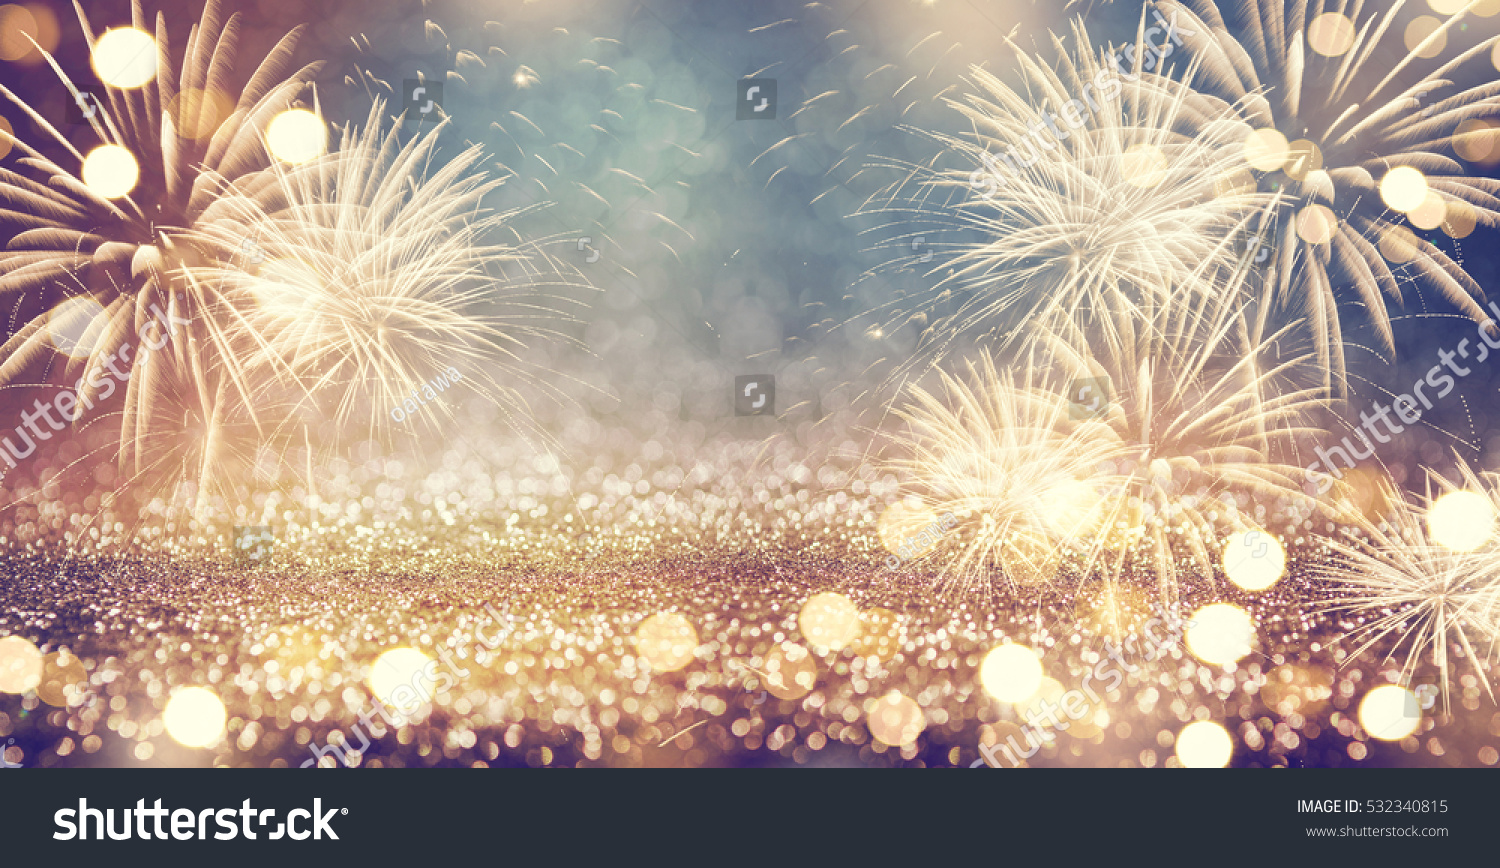 New Years Eve Images Free